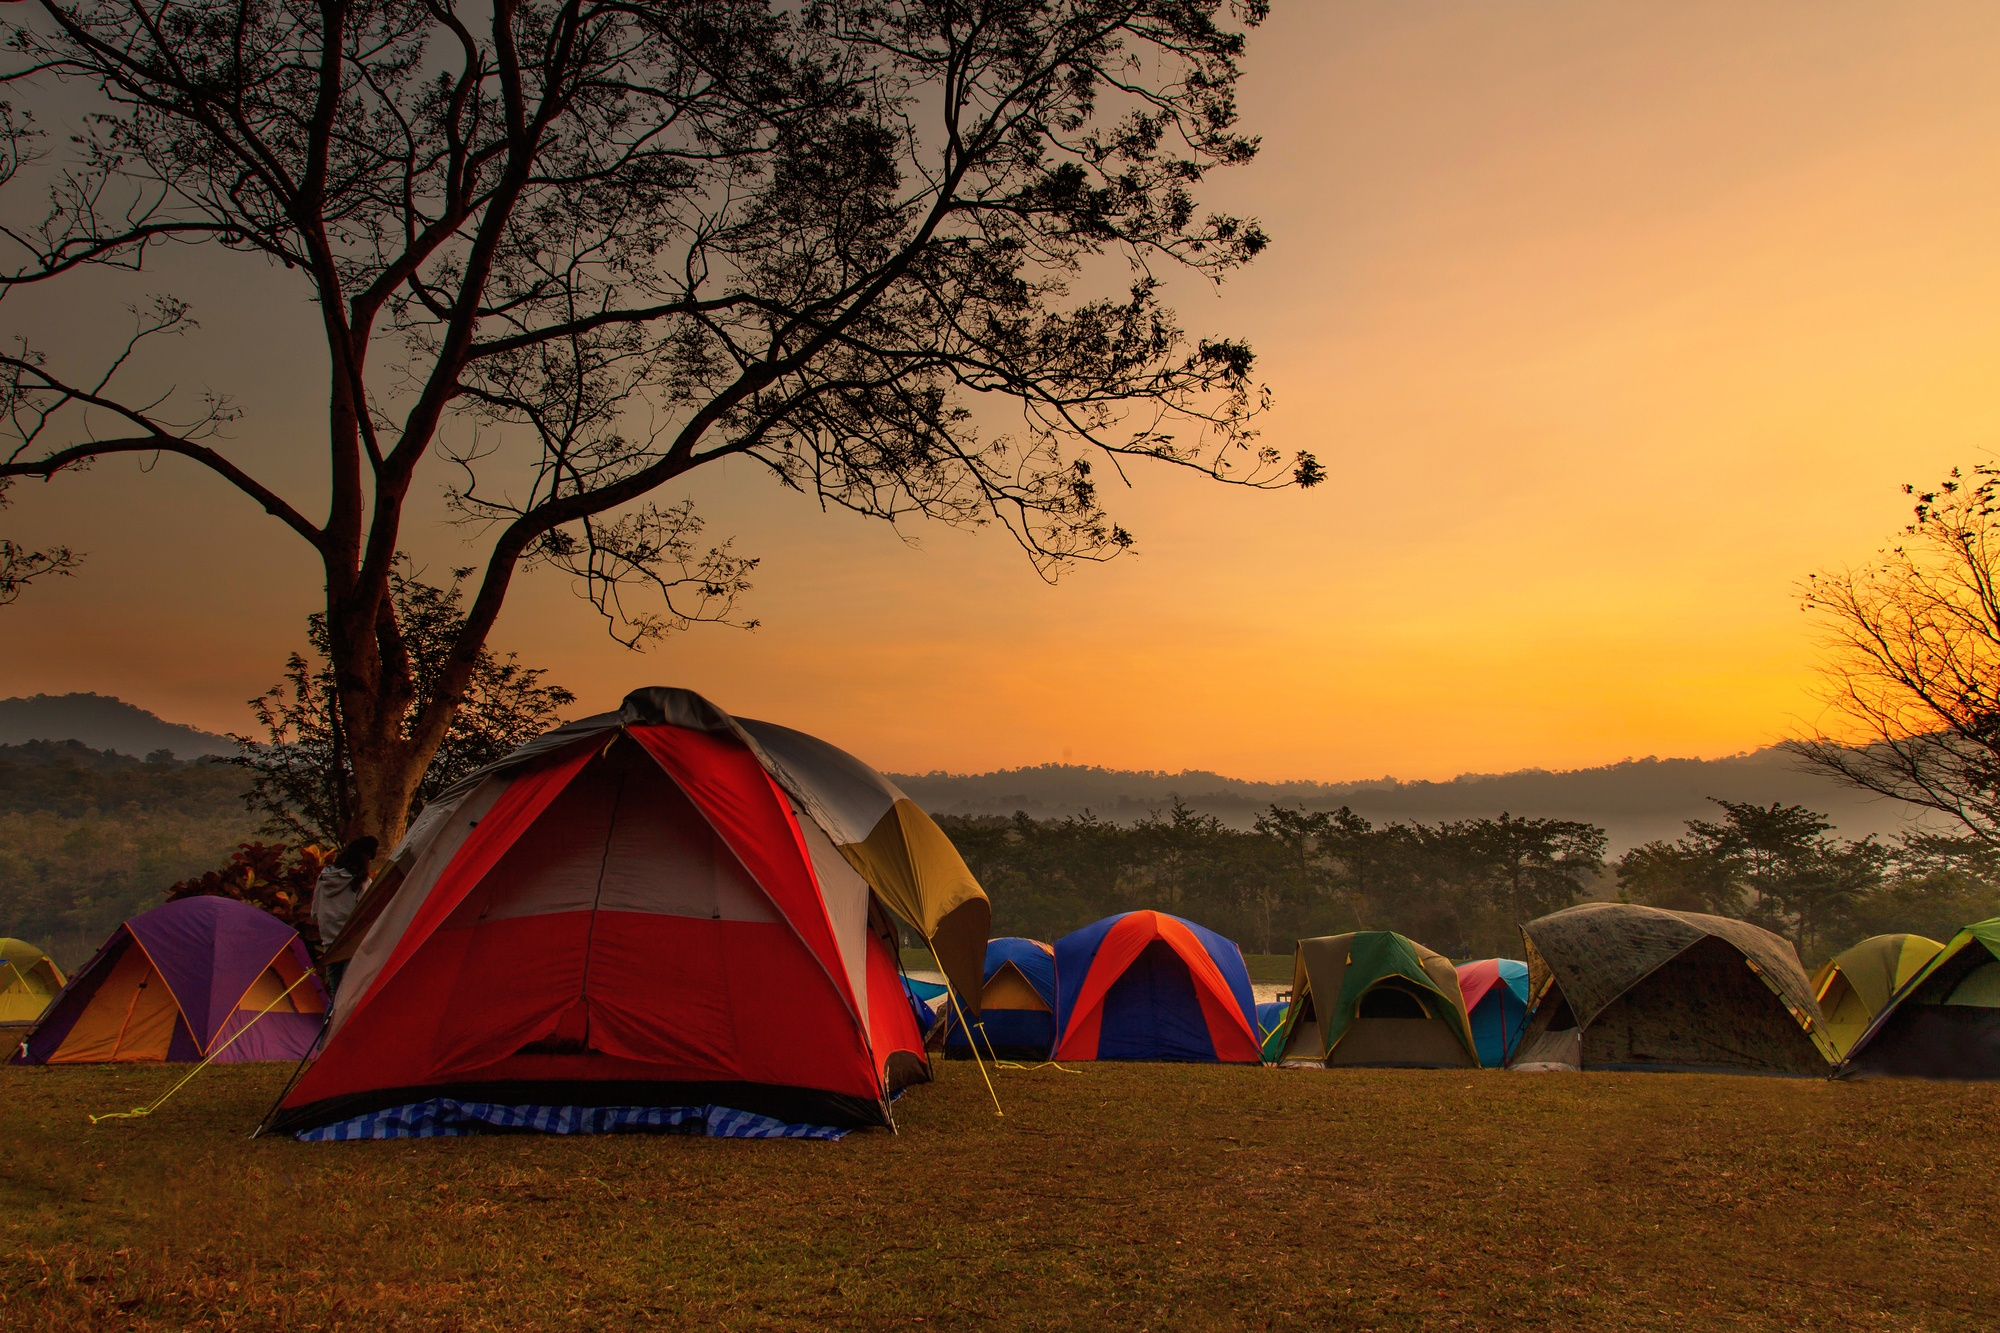 REI Kingdom 4: Is It Right For Your Camping Experience?